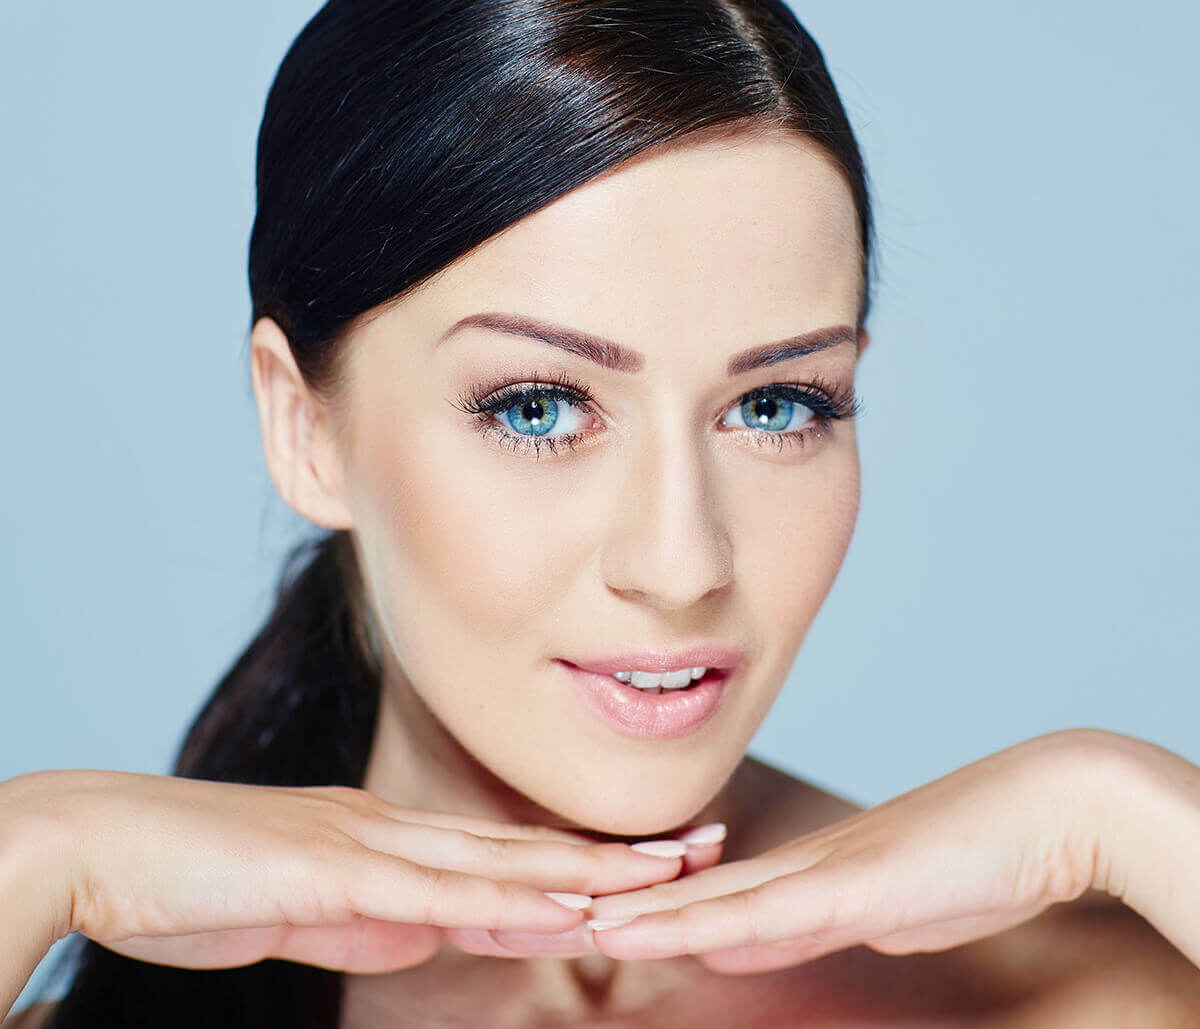 Chemical Peels Offered by a Dermatologist in Hamilton, ON Area Offer Great Benefits at Reasonable Cost